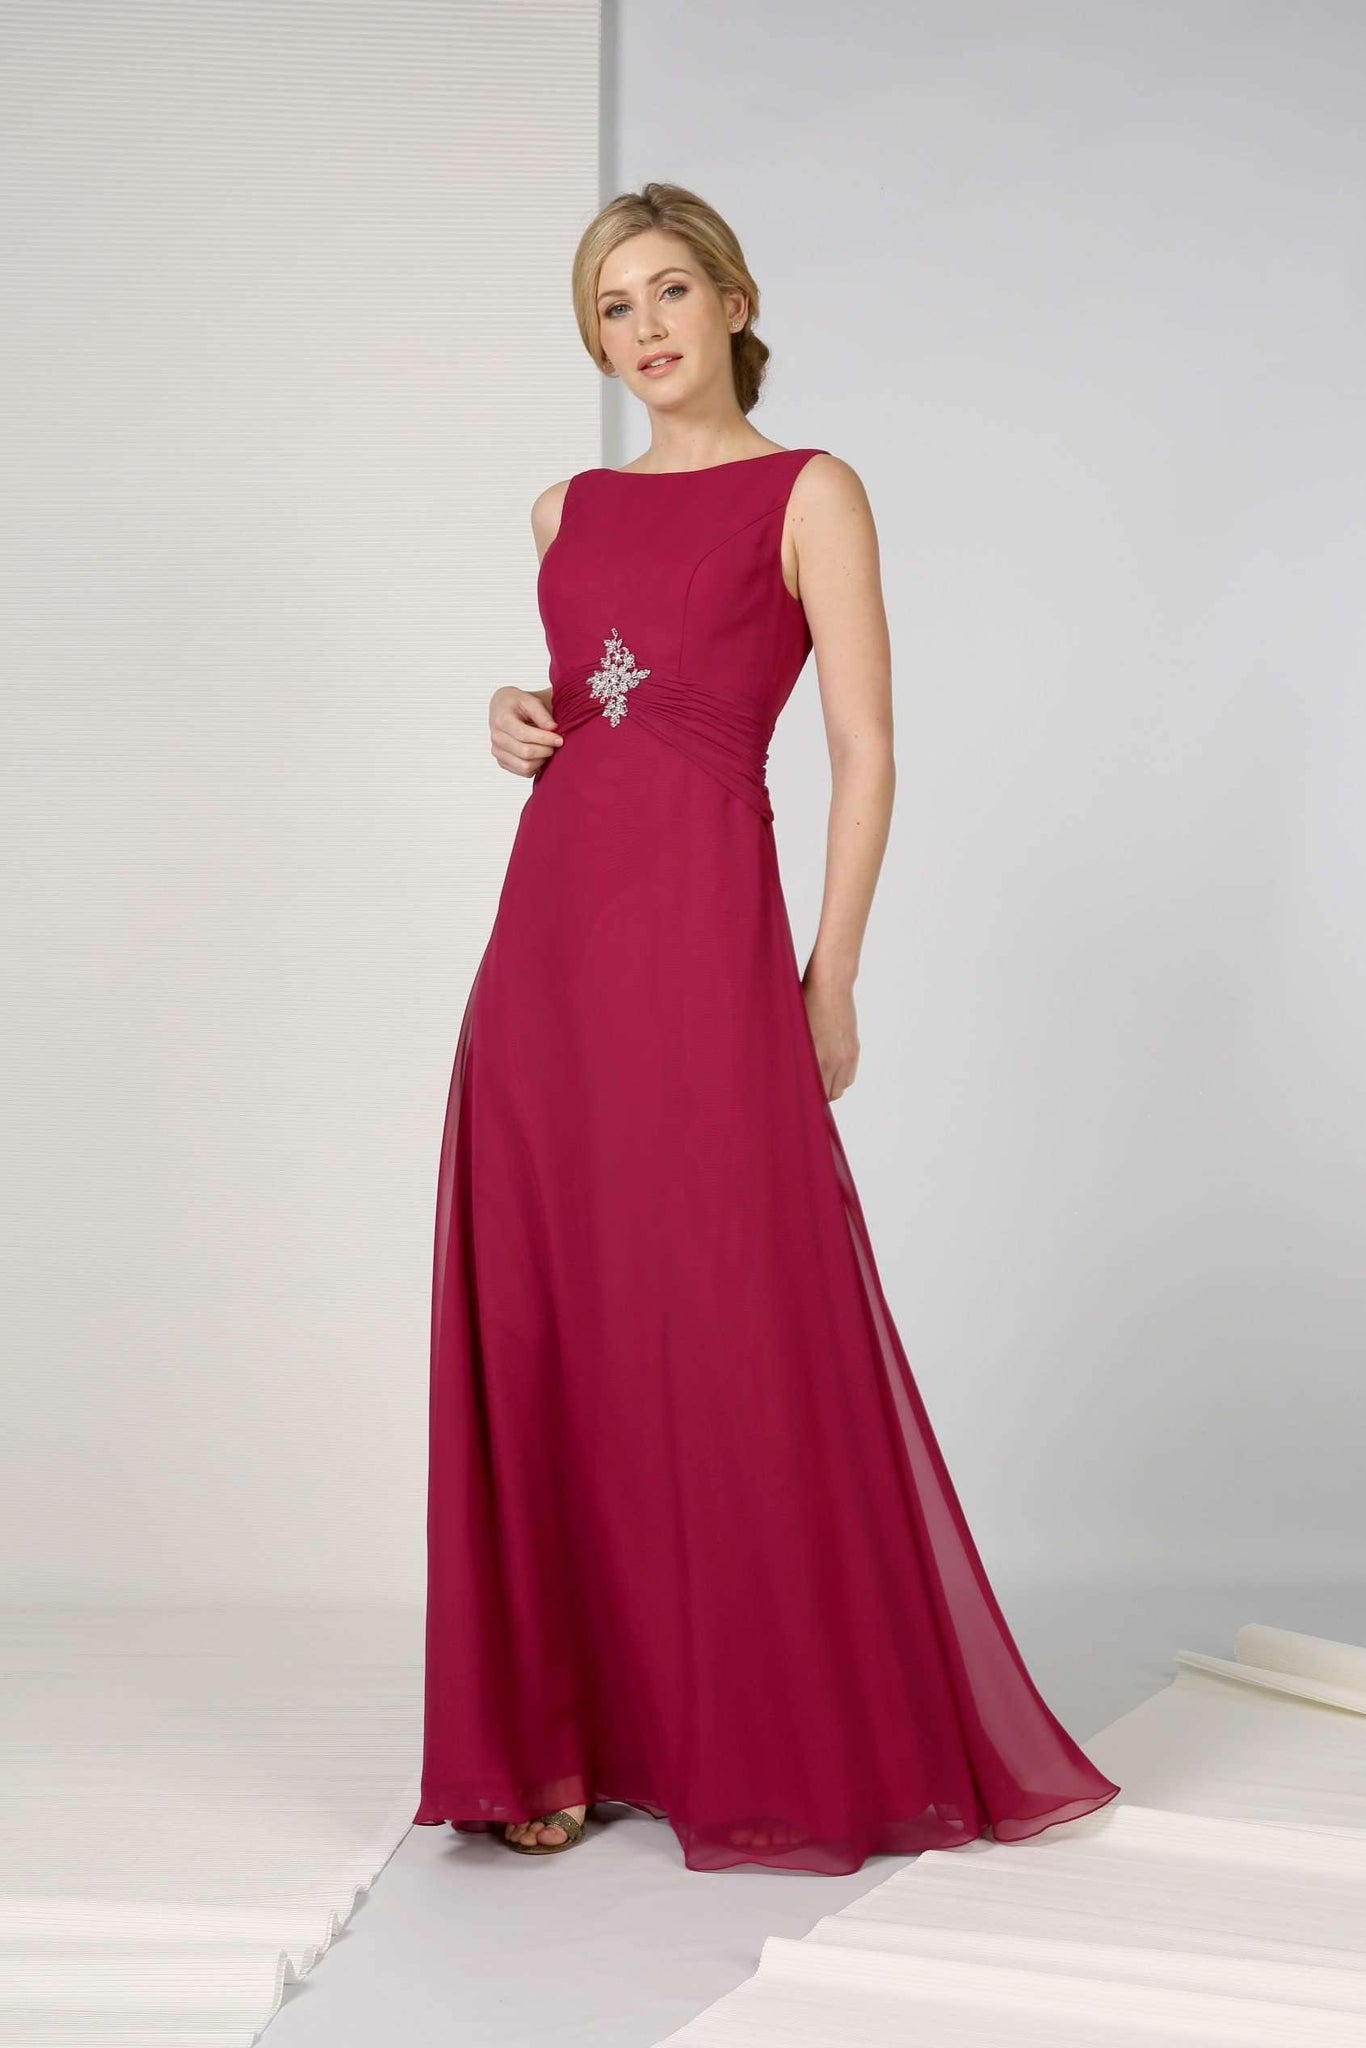 Teagan Nieve Occasion - Adore Bridal and Occasion Wear